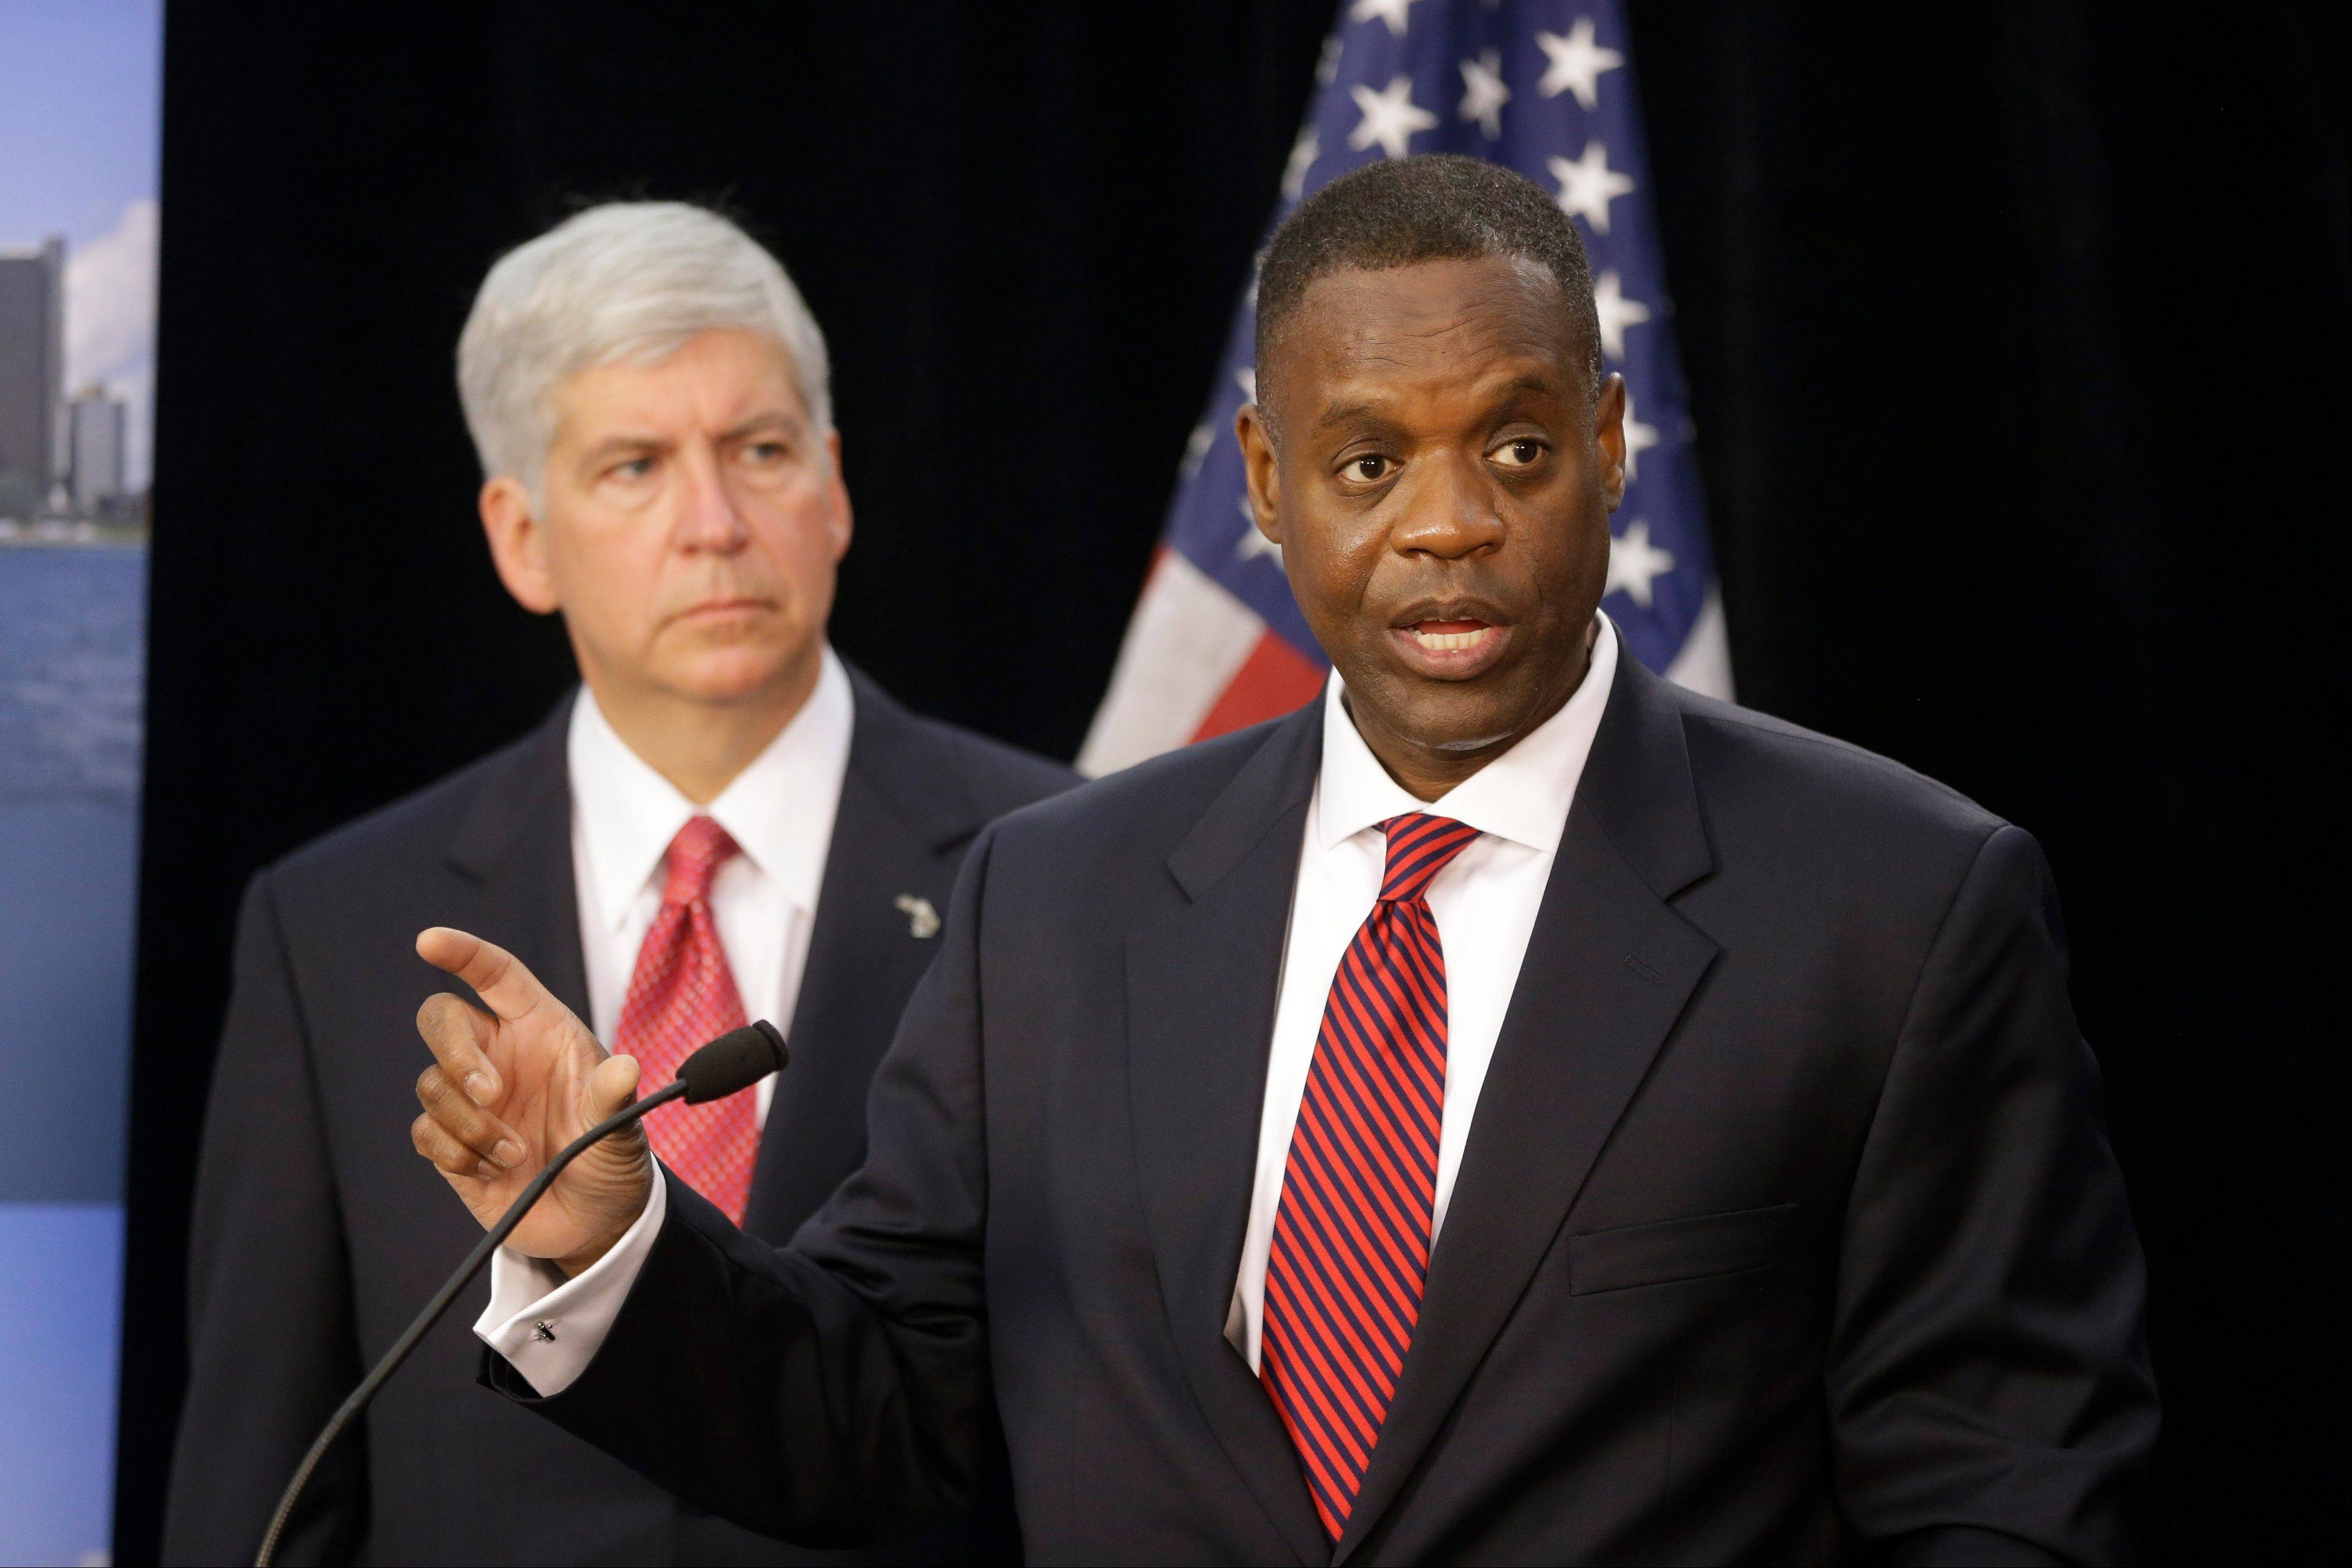 "FILE - In a July 19, 2013, file photo state-appointed emergency manager Kevyn Orr, right, and Michigan Gov. Rick Snyder, address the media during a news conference in Detroit. A judge told a courtroom packed with lawyers Tuesday, Sept. 17, 2013, that deals between Detroit and its creditors would be better than years of ""horrendous"" litigation in the largest public bankruptcy in U.S. history. Eastern Michigan's chief federal judge, Gerald Rosen, opened the first formal round of mediation by giving a pep talk and introducing other experts who will work with the city and its creditors to try to reach settlements while the bankruptcy case moves separately through court. (AP Photo/Carlos Osorio)"